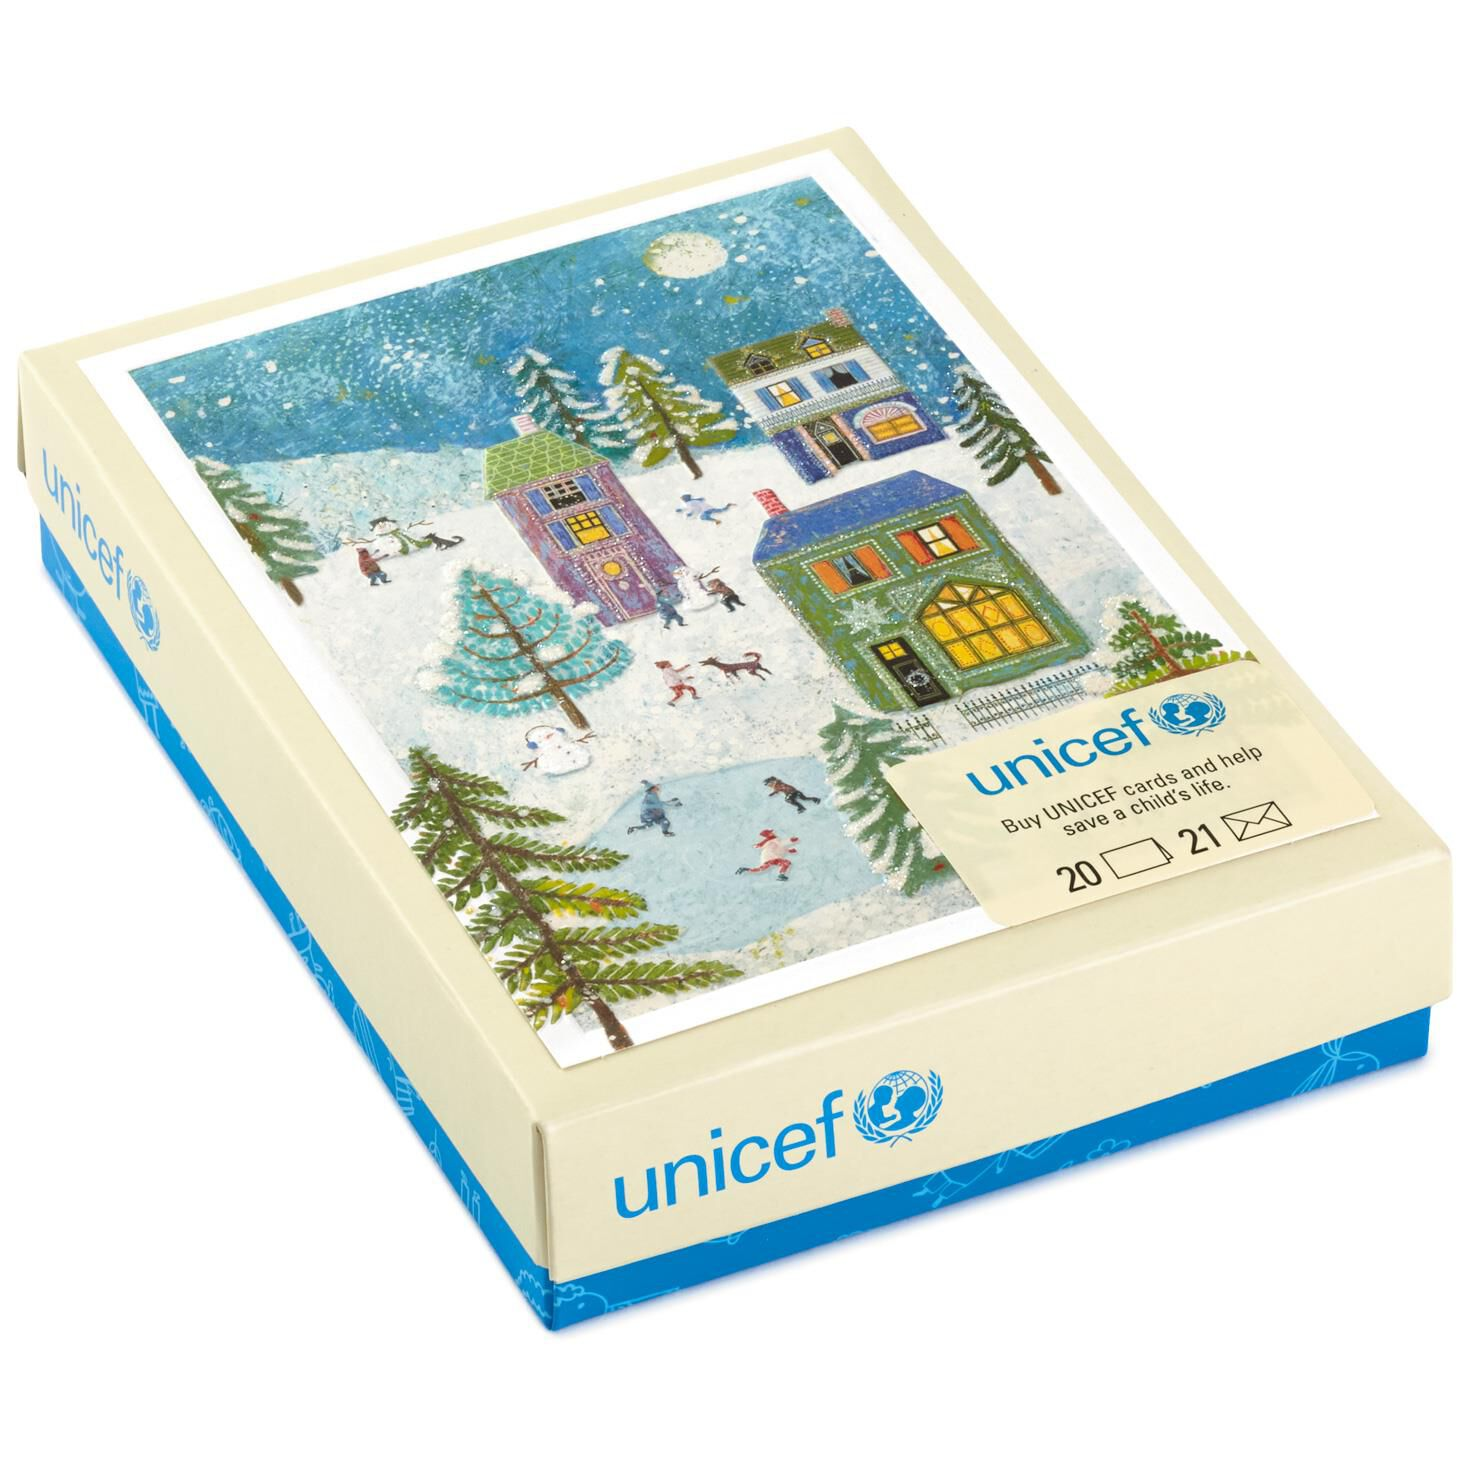 hallmark unicef soaring dove christmas cards box of 20 the paper ...